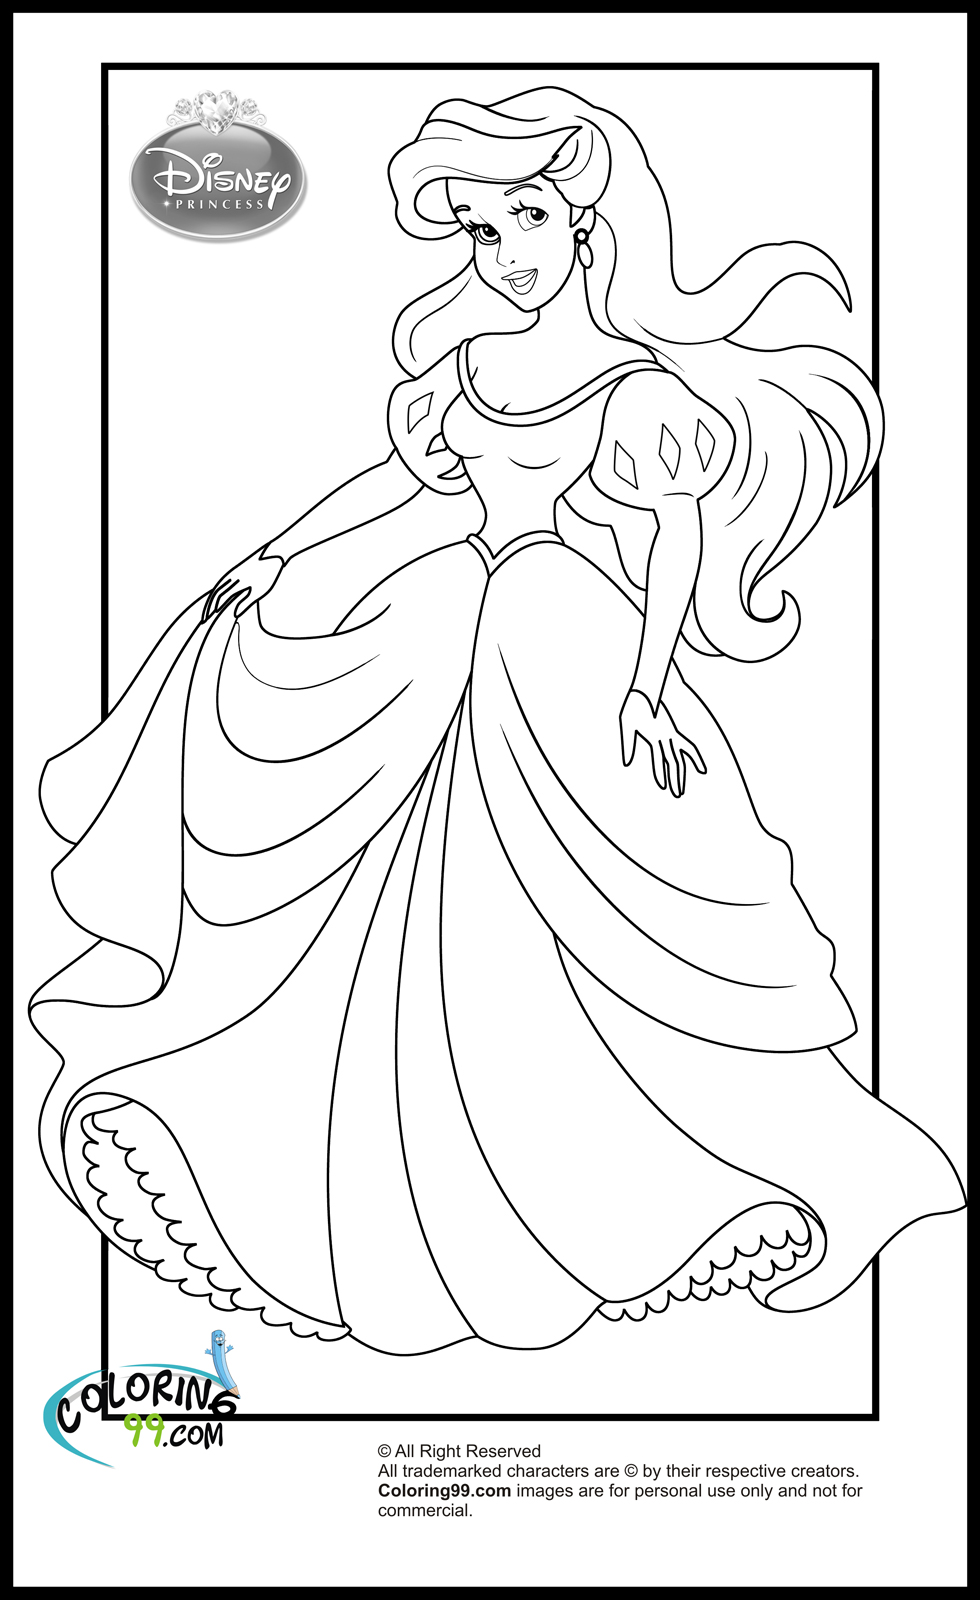 Disney Princess Coloring Pages Princess Ariel Coloring Page Printable